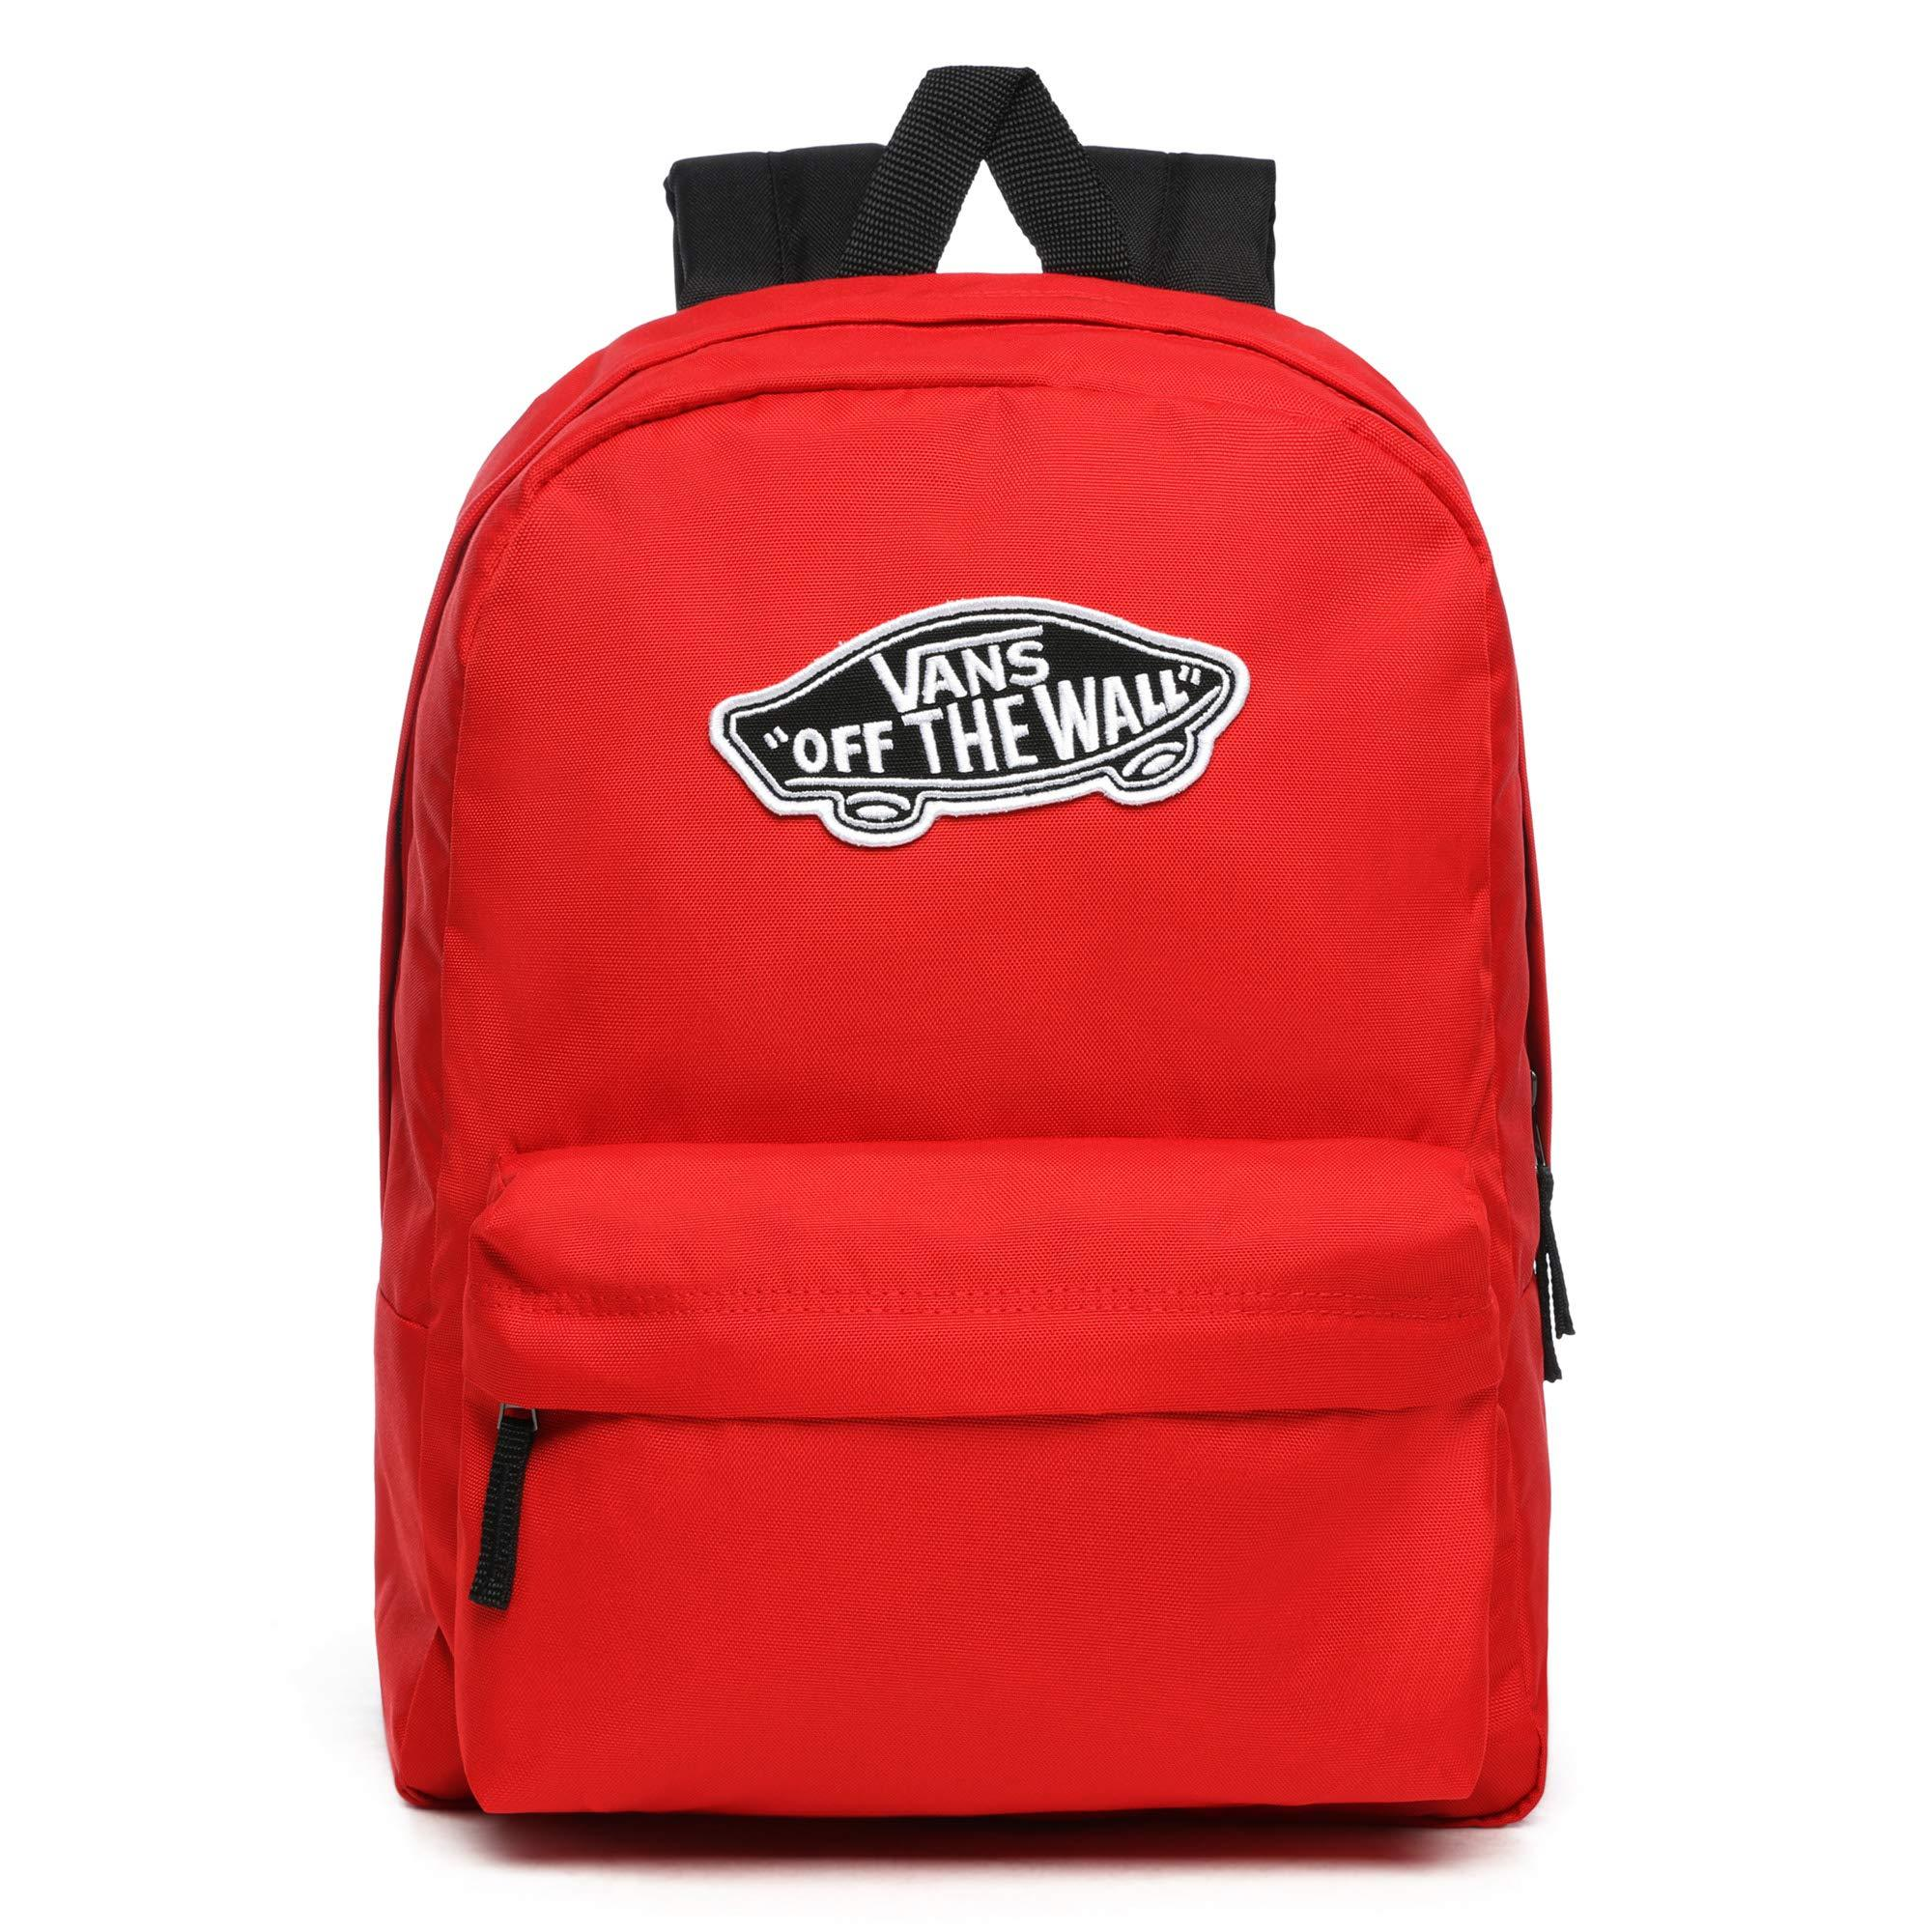 Vans Realm Backpack - Goji Berry SP-Accessories-Bags Vans